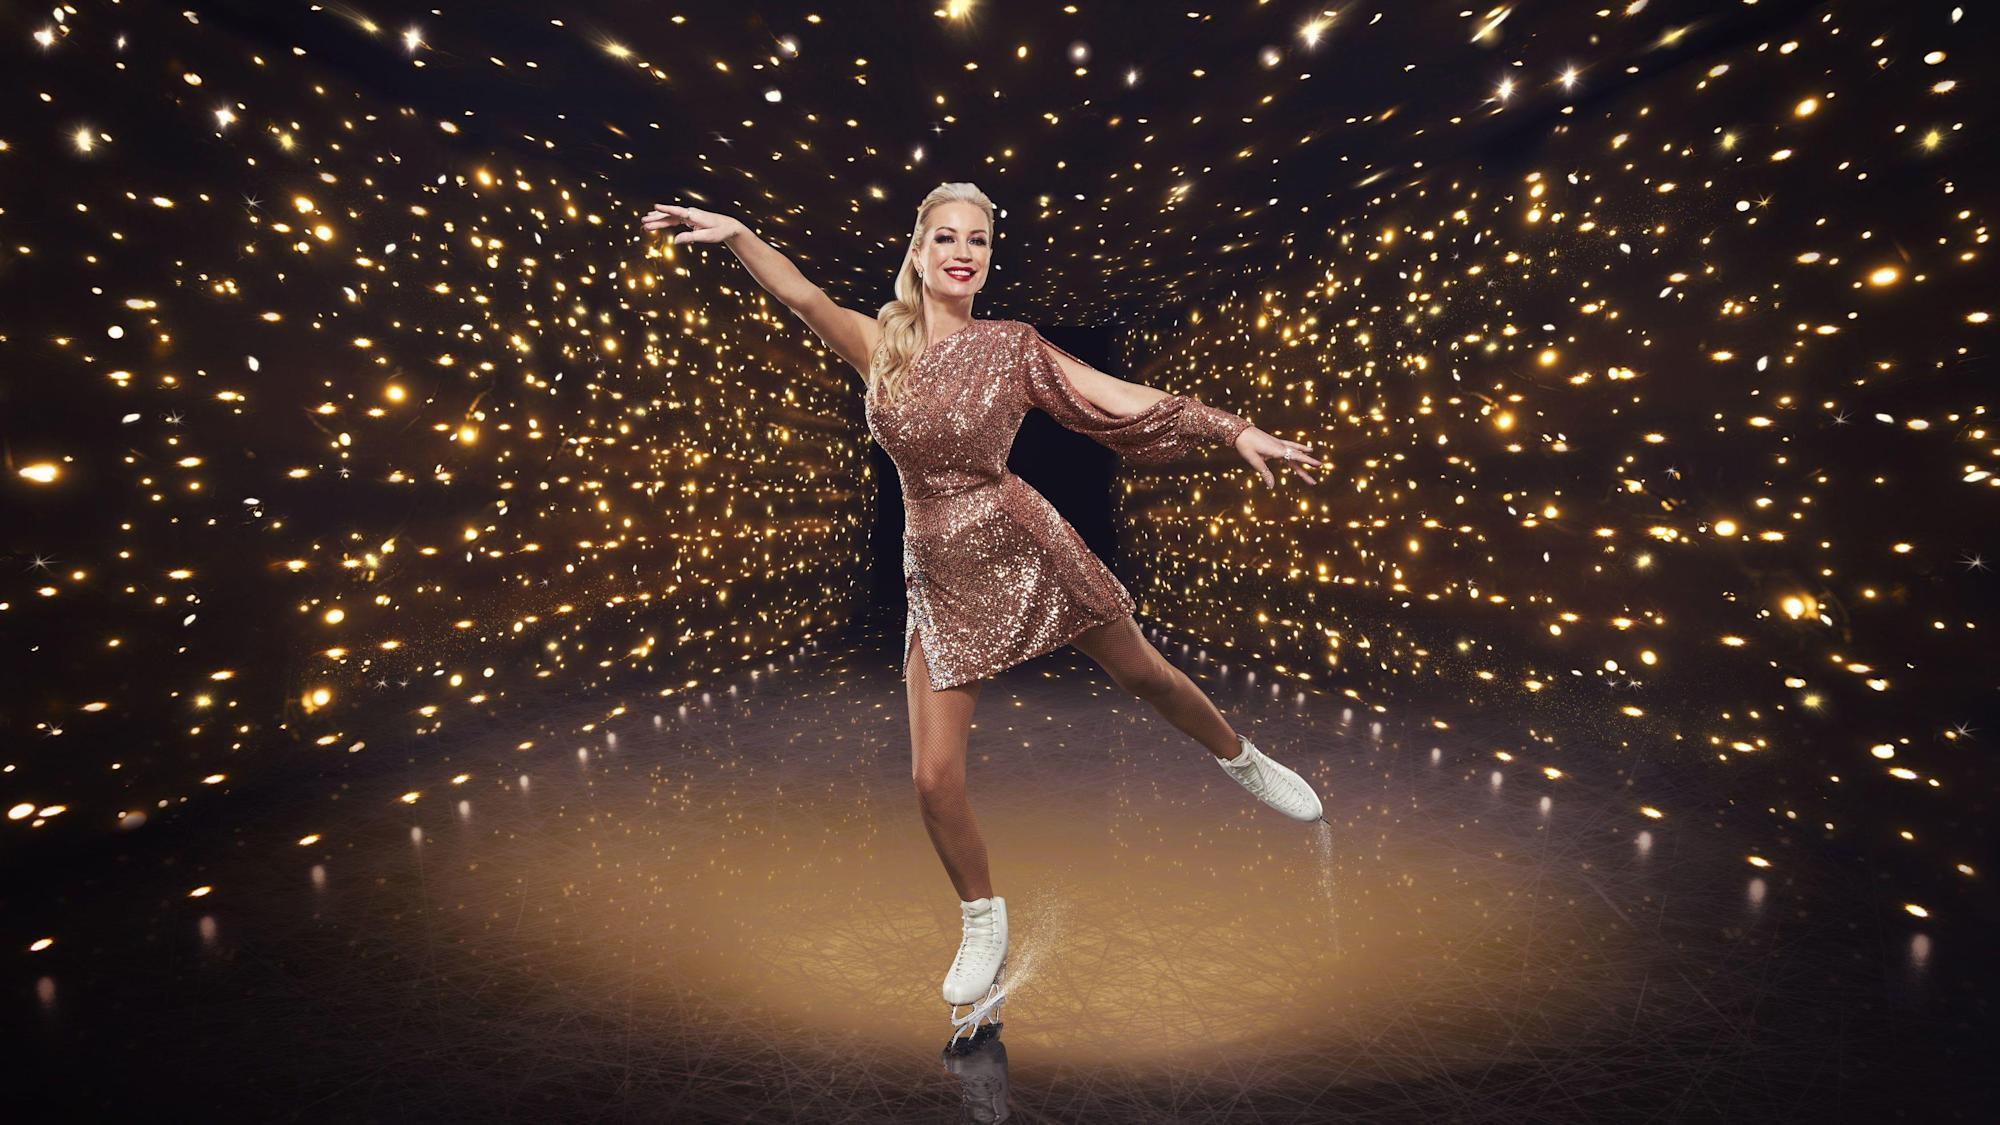 Denise Van Outen withdraws from Dancing On Ice after injury